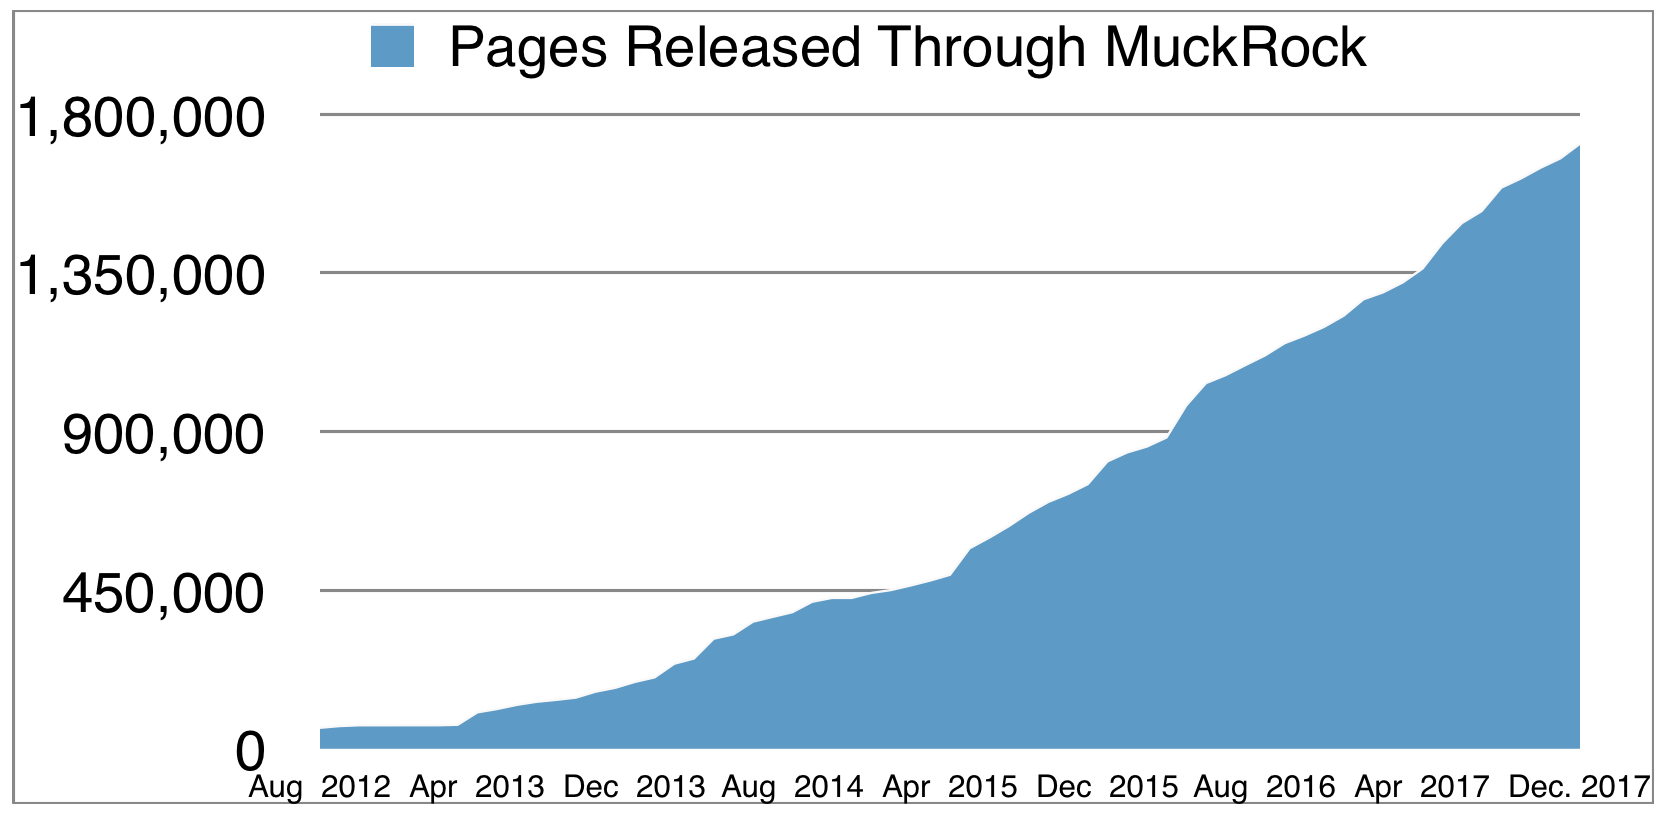 Data released through MuckRock requests over time